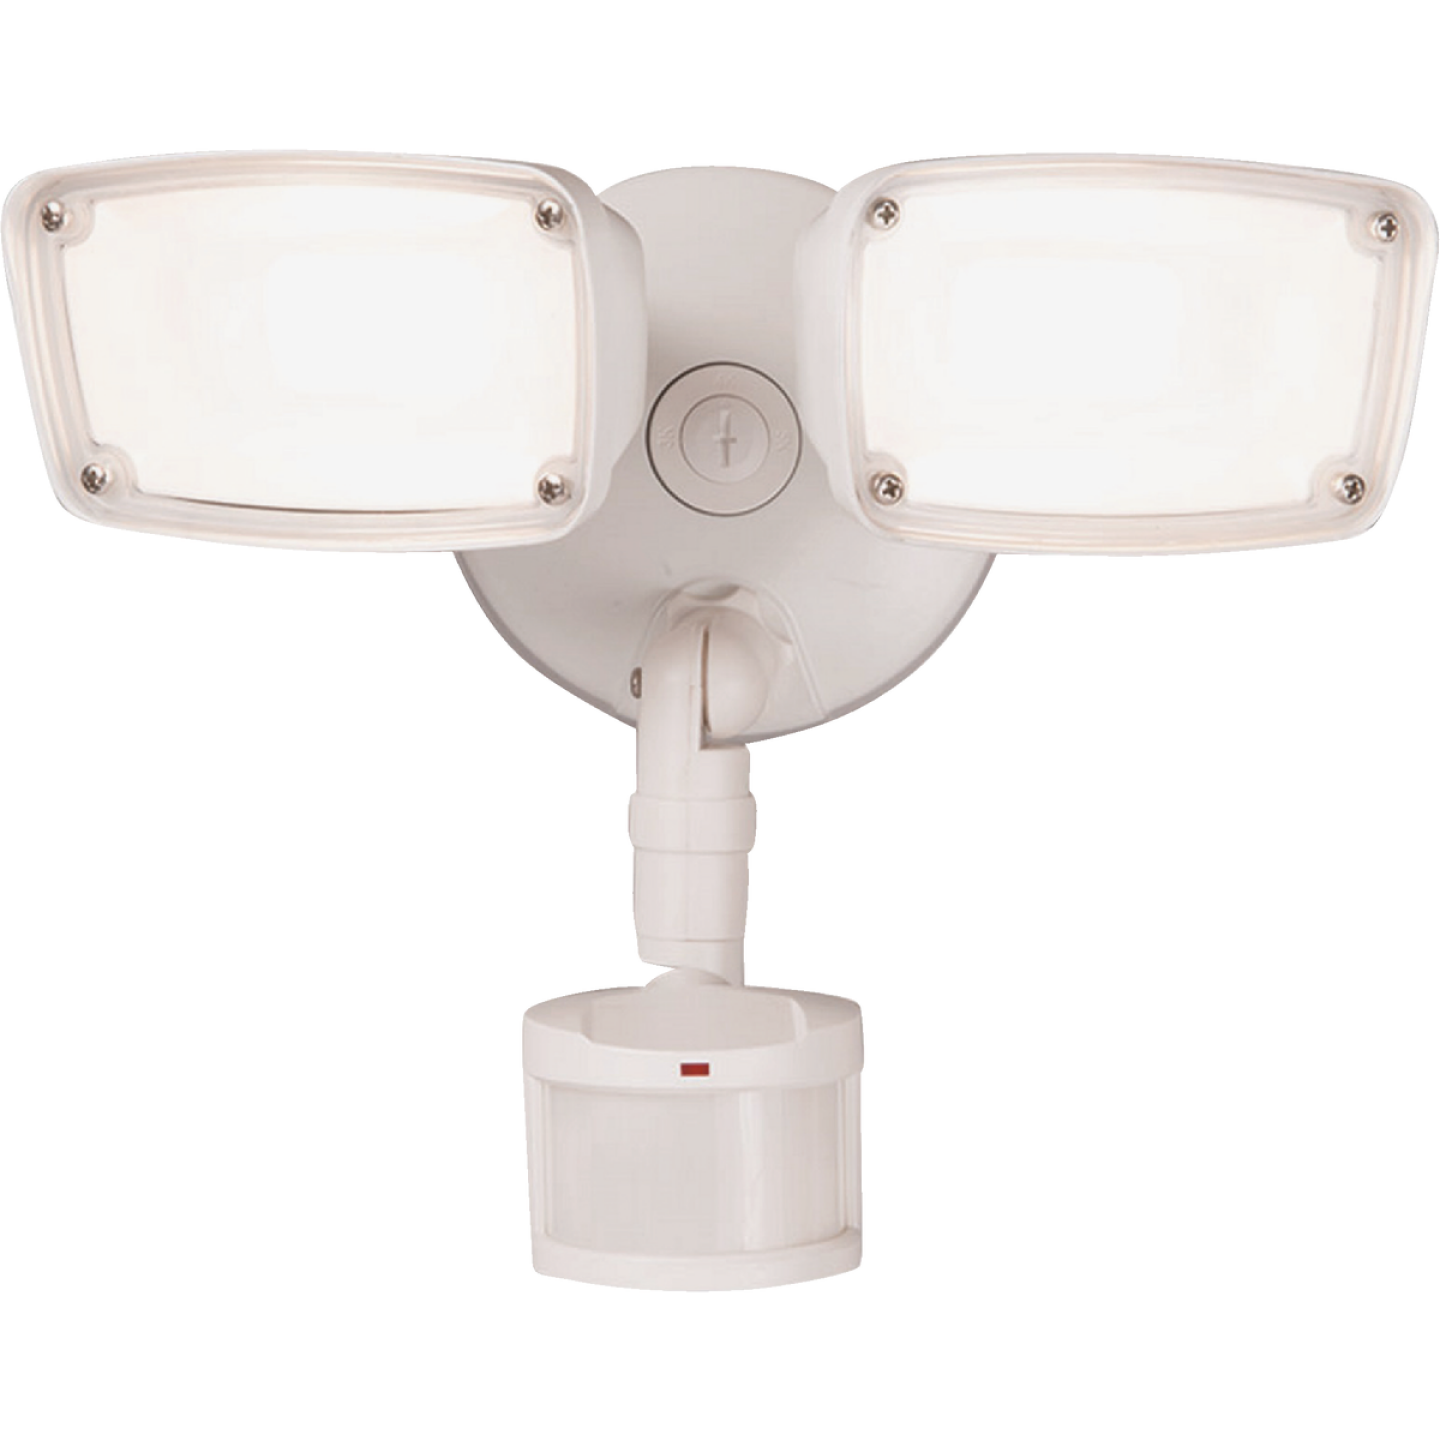 Halo White Motion Sensing LED Twin Head Floodlight Fixture Image 1